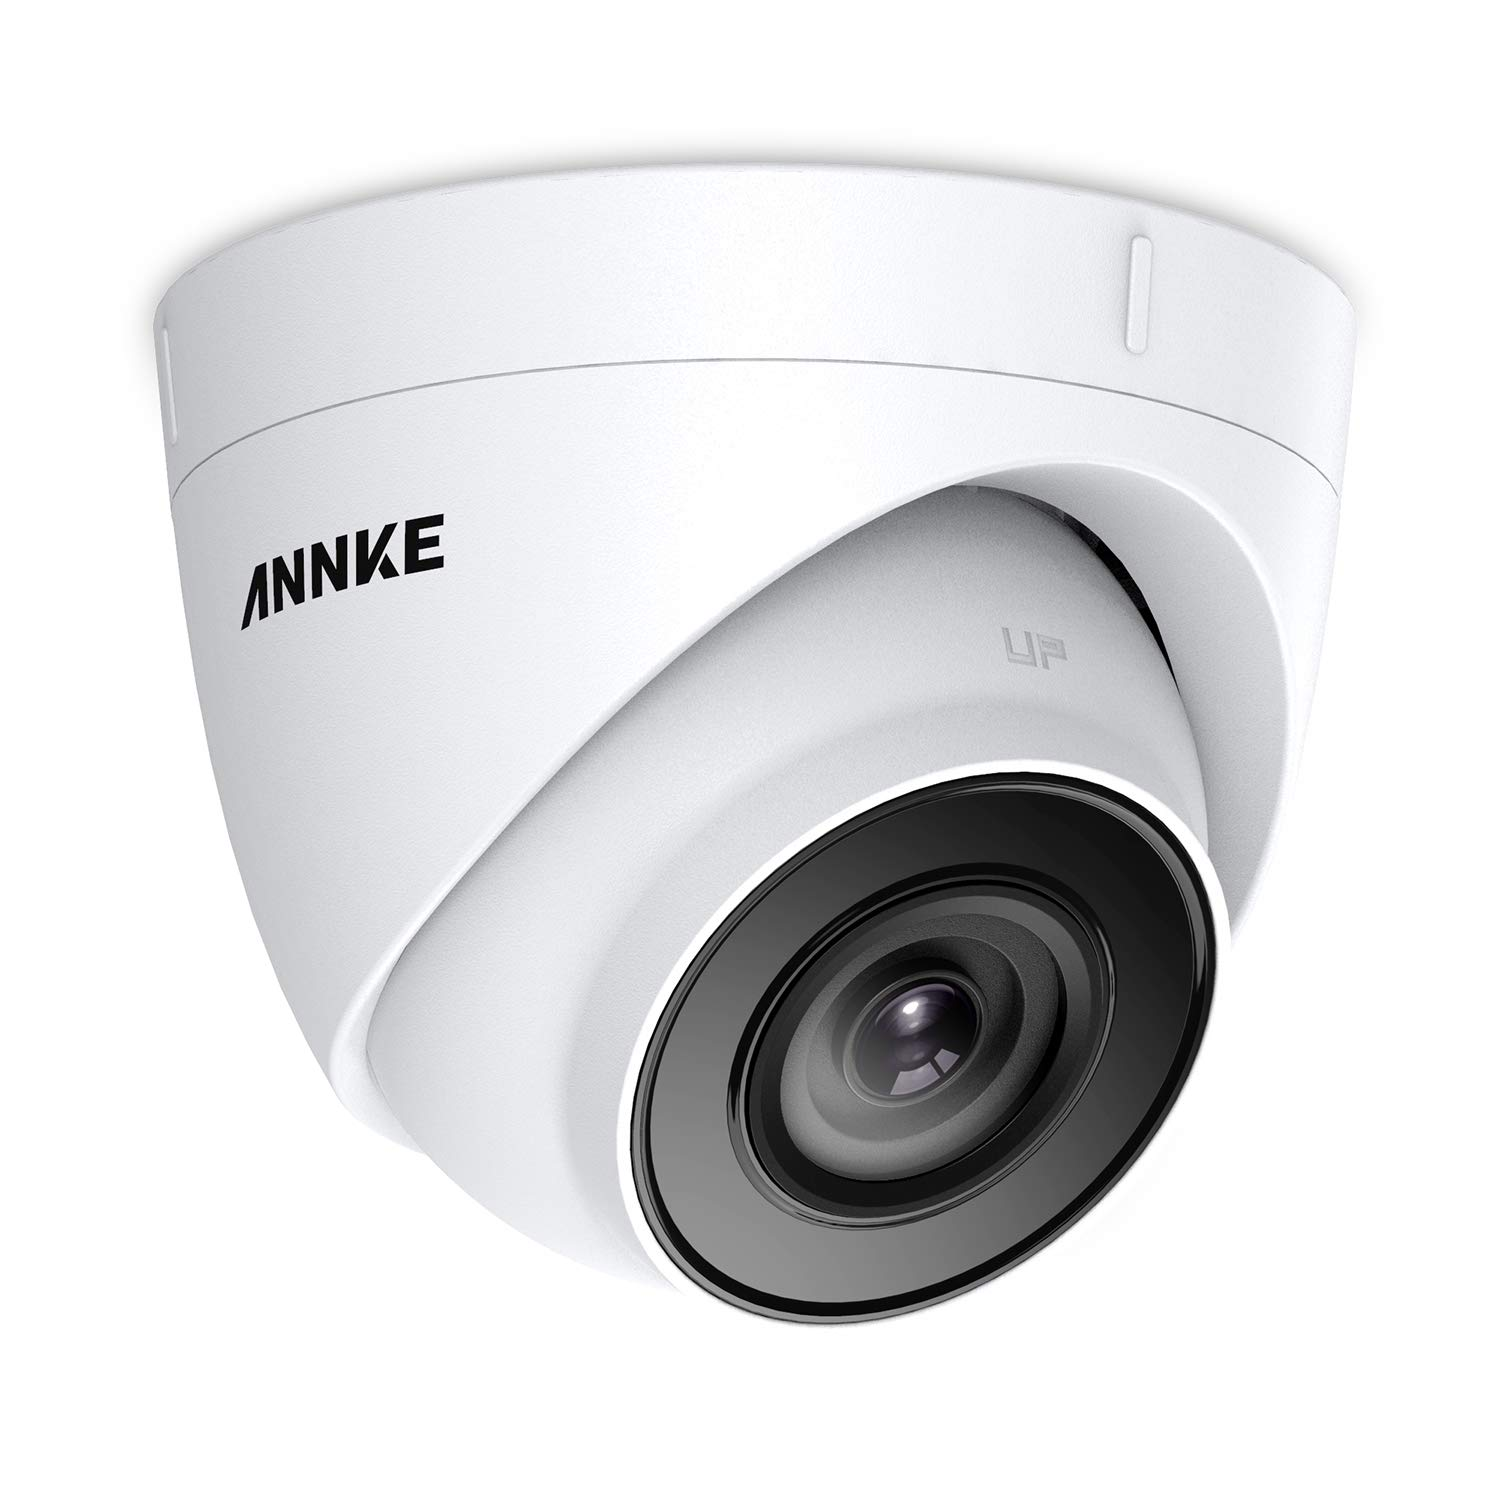 5MP PoE Security Camera 2560x1920 Super HD IP Cam for ANNKE 5MP/4K NVR Security System, 100ft EXIR Night Vision, H.265+ Video Compression, Onvif Compliant, IP67 Weatherproof for Outdoor Indoor